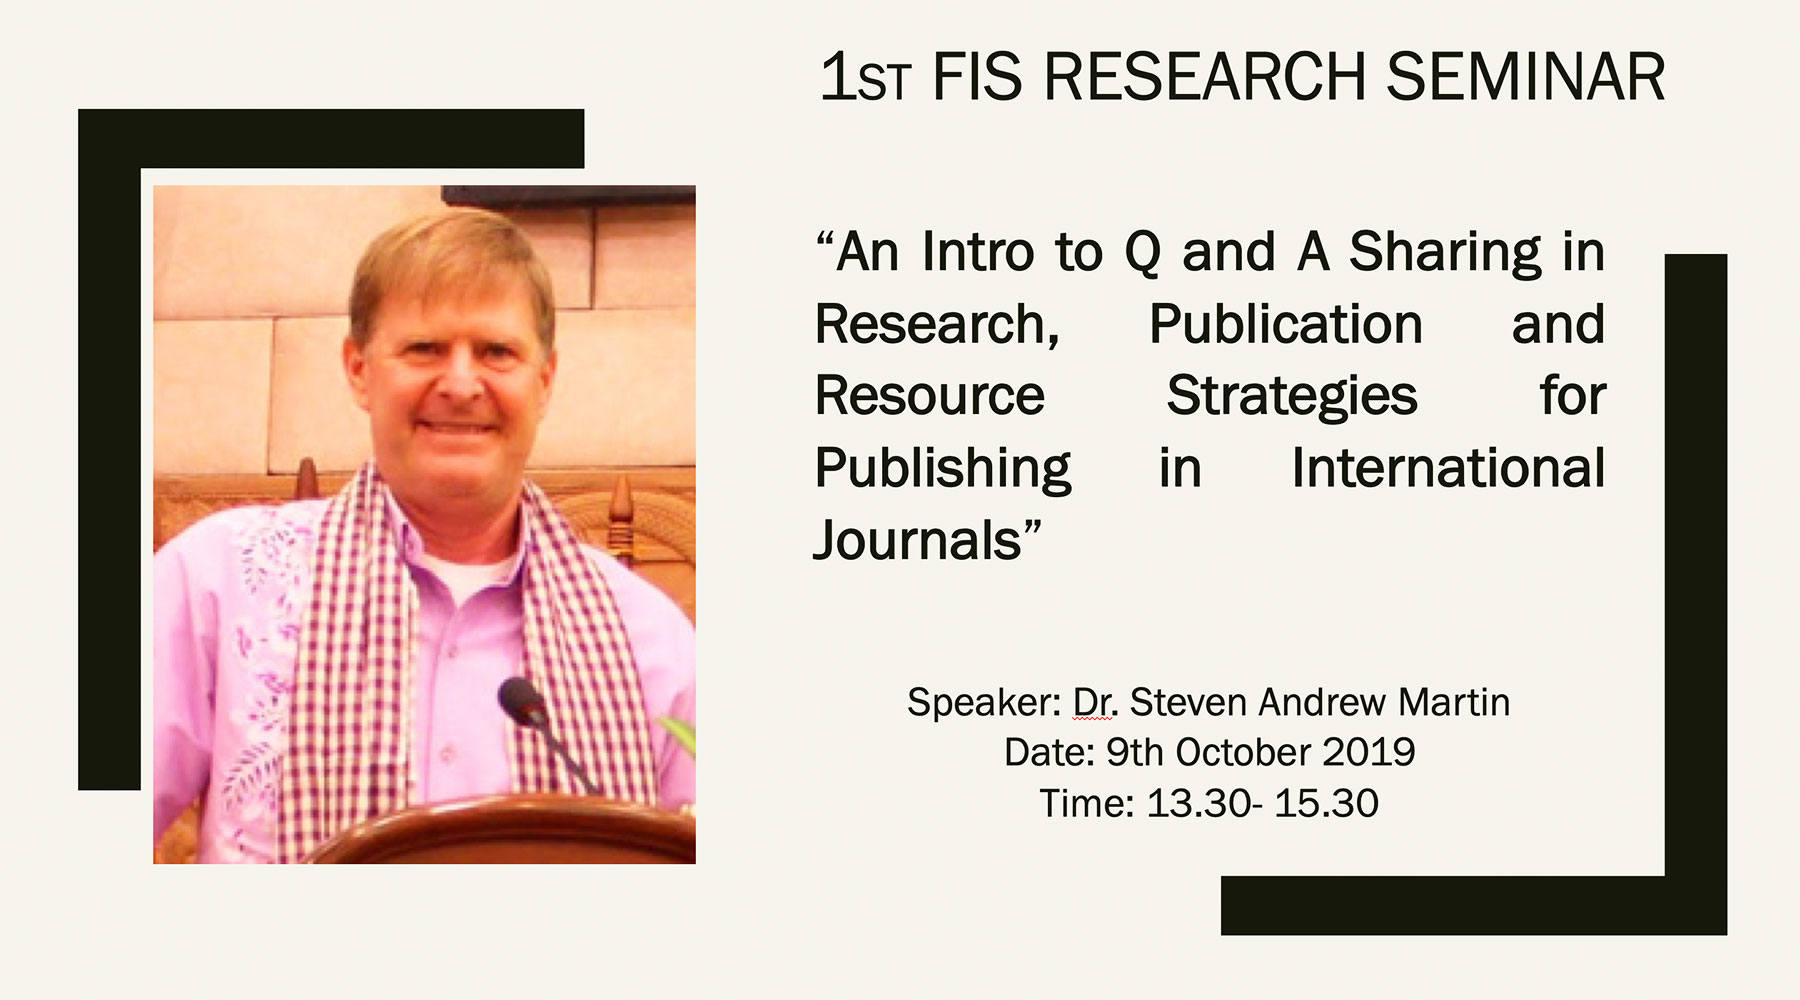 Asst Prof Dr Steven A Martin | Faculty of International Studies | 1st FIS Research Seminar | Prince of Songkla University